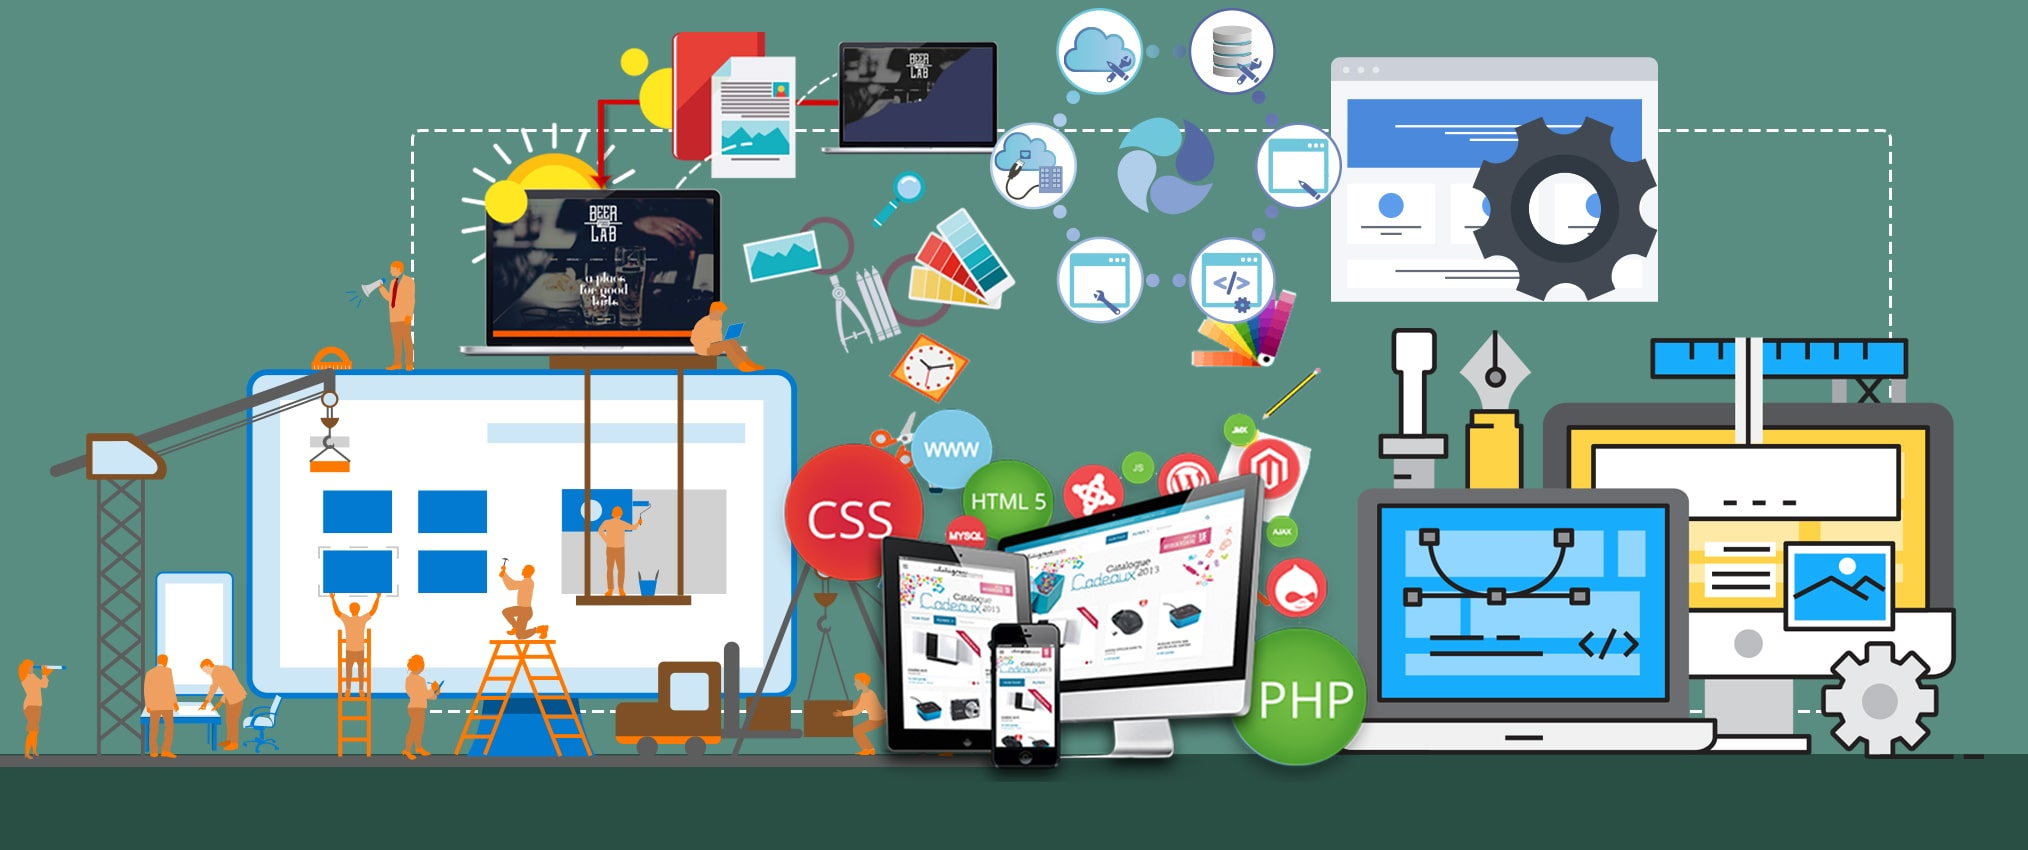 Vital Web Design Tips And Tricks For An Amazing Website